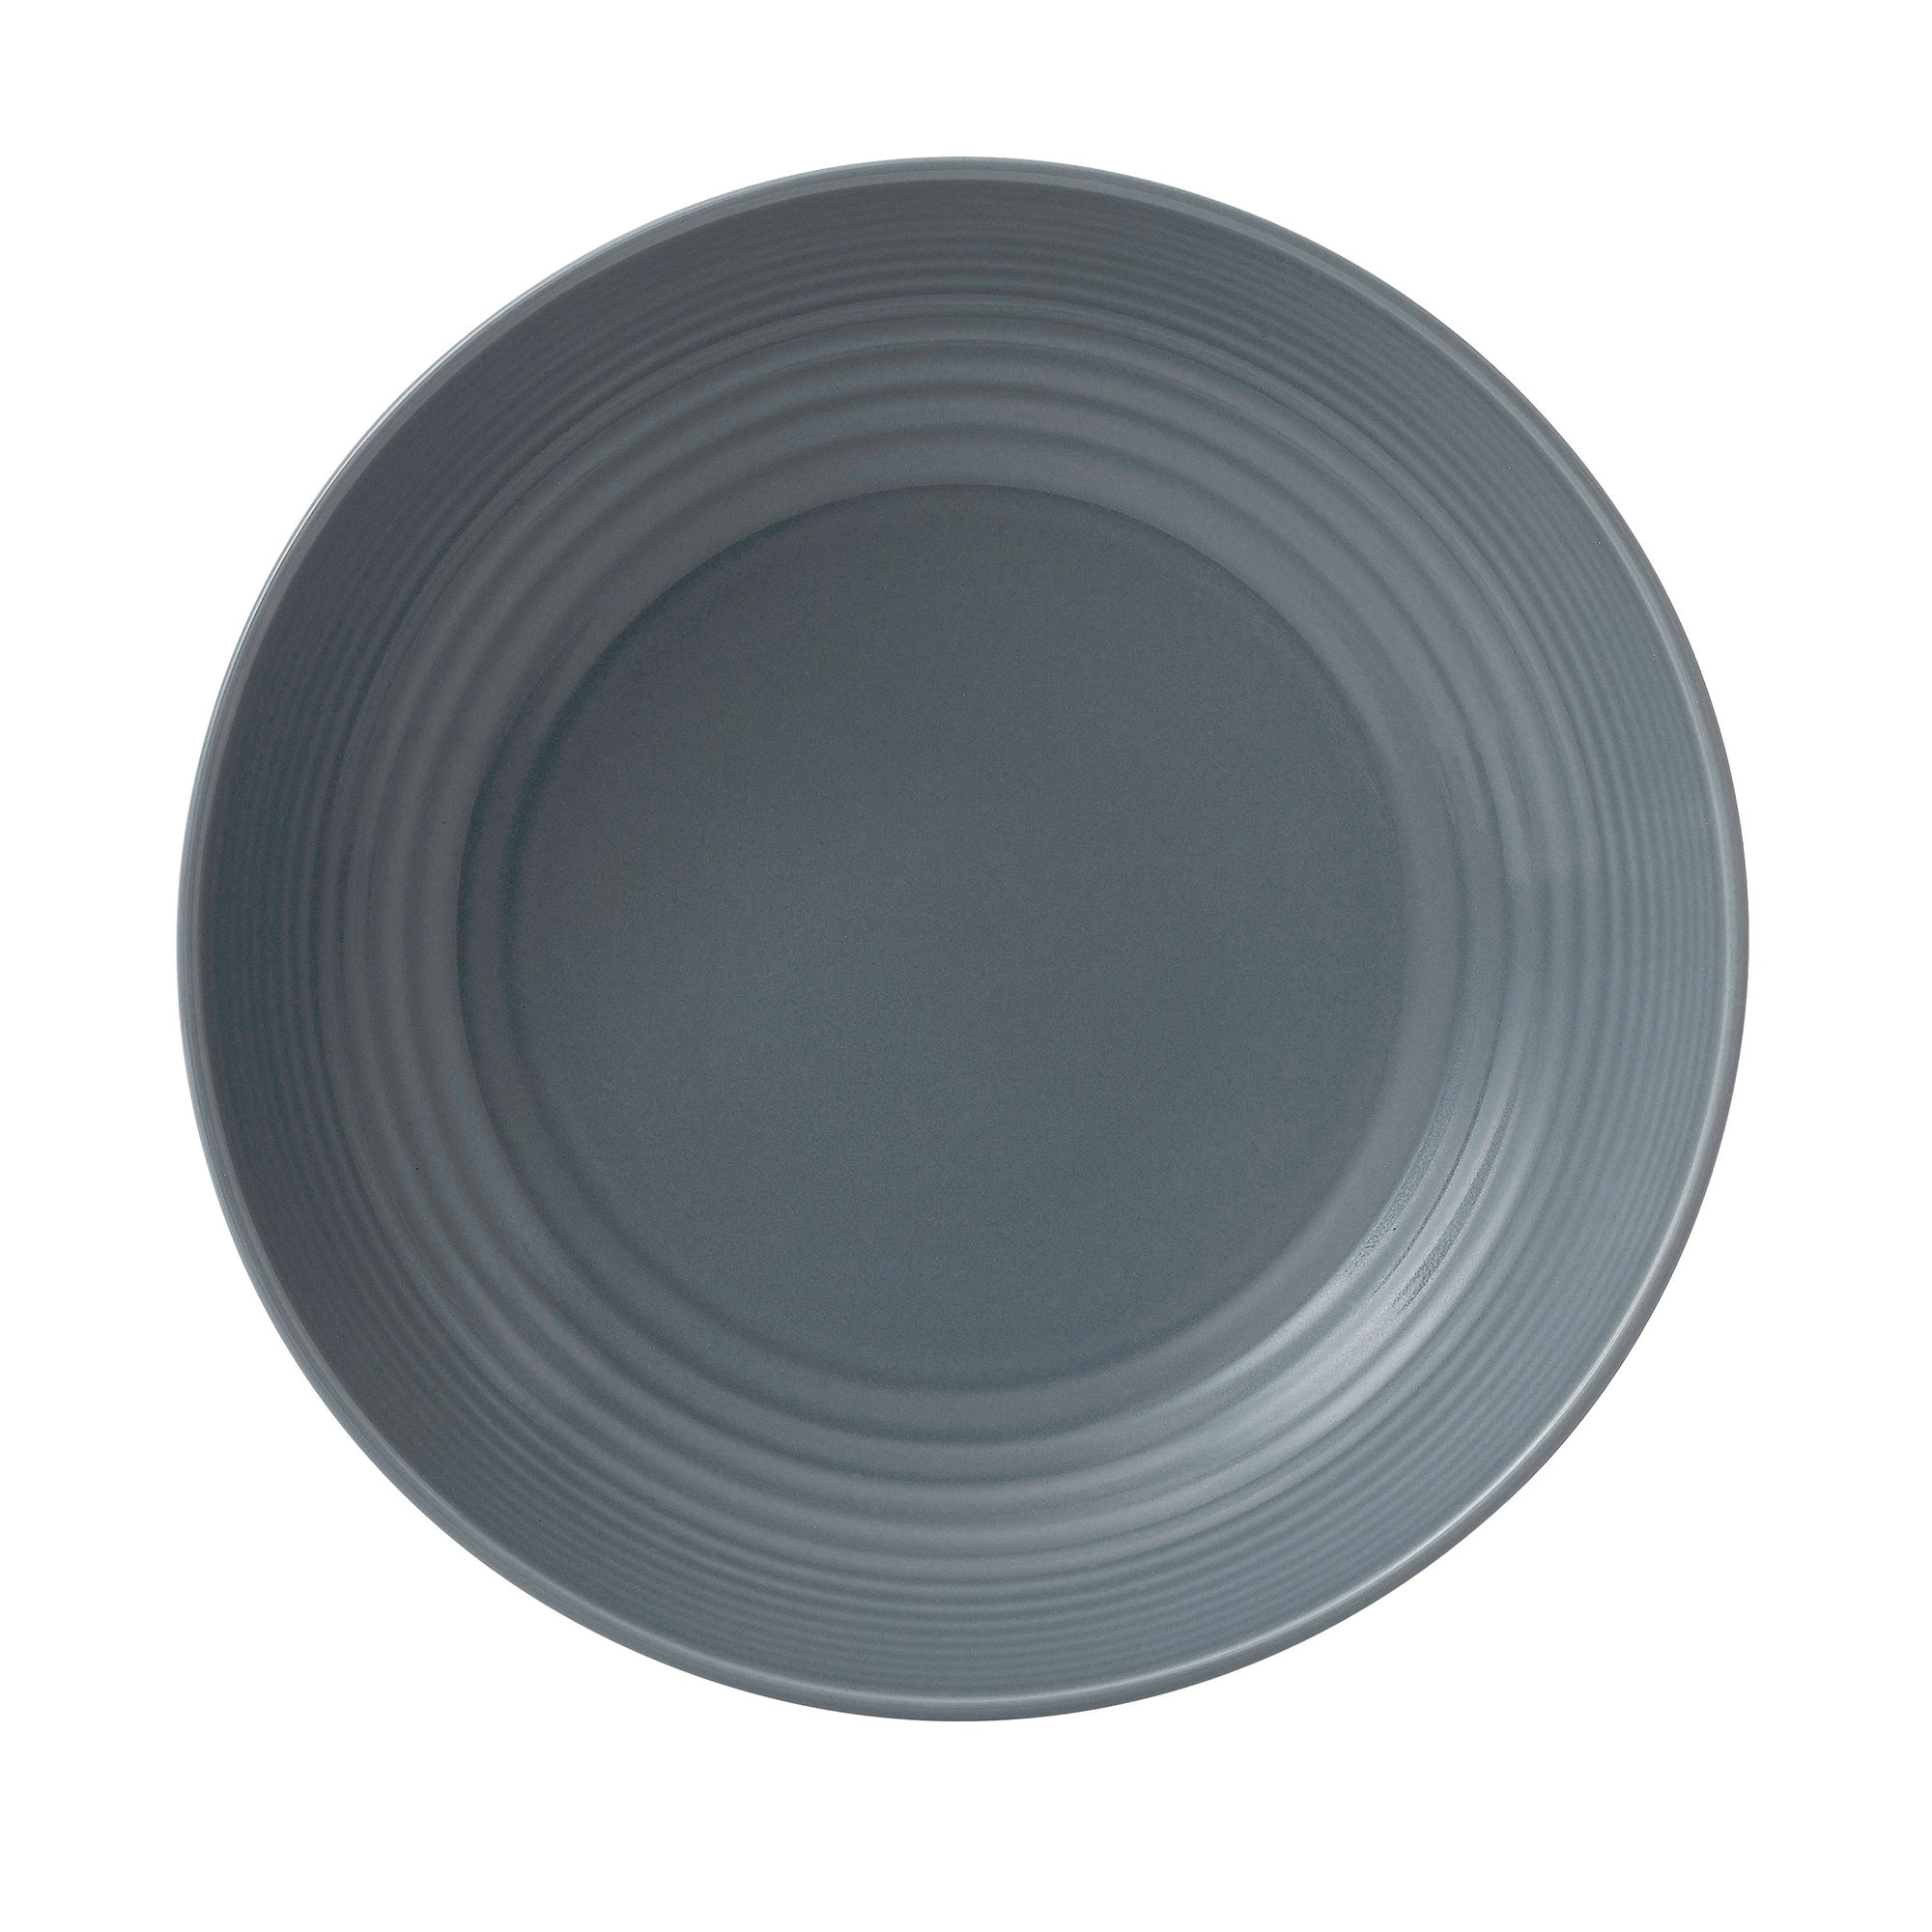 Click to view product details and reviews for Gordon Ramsay Grey Maze Pasta Bowl Grey.